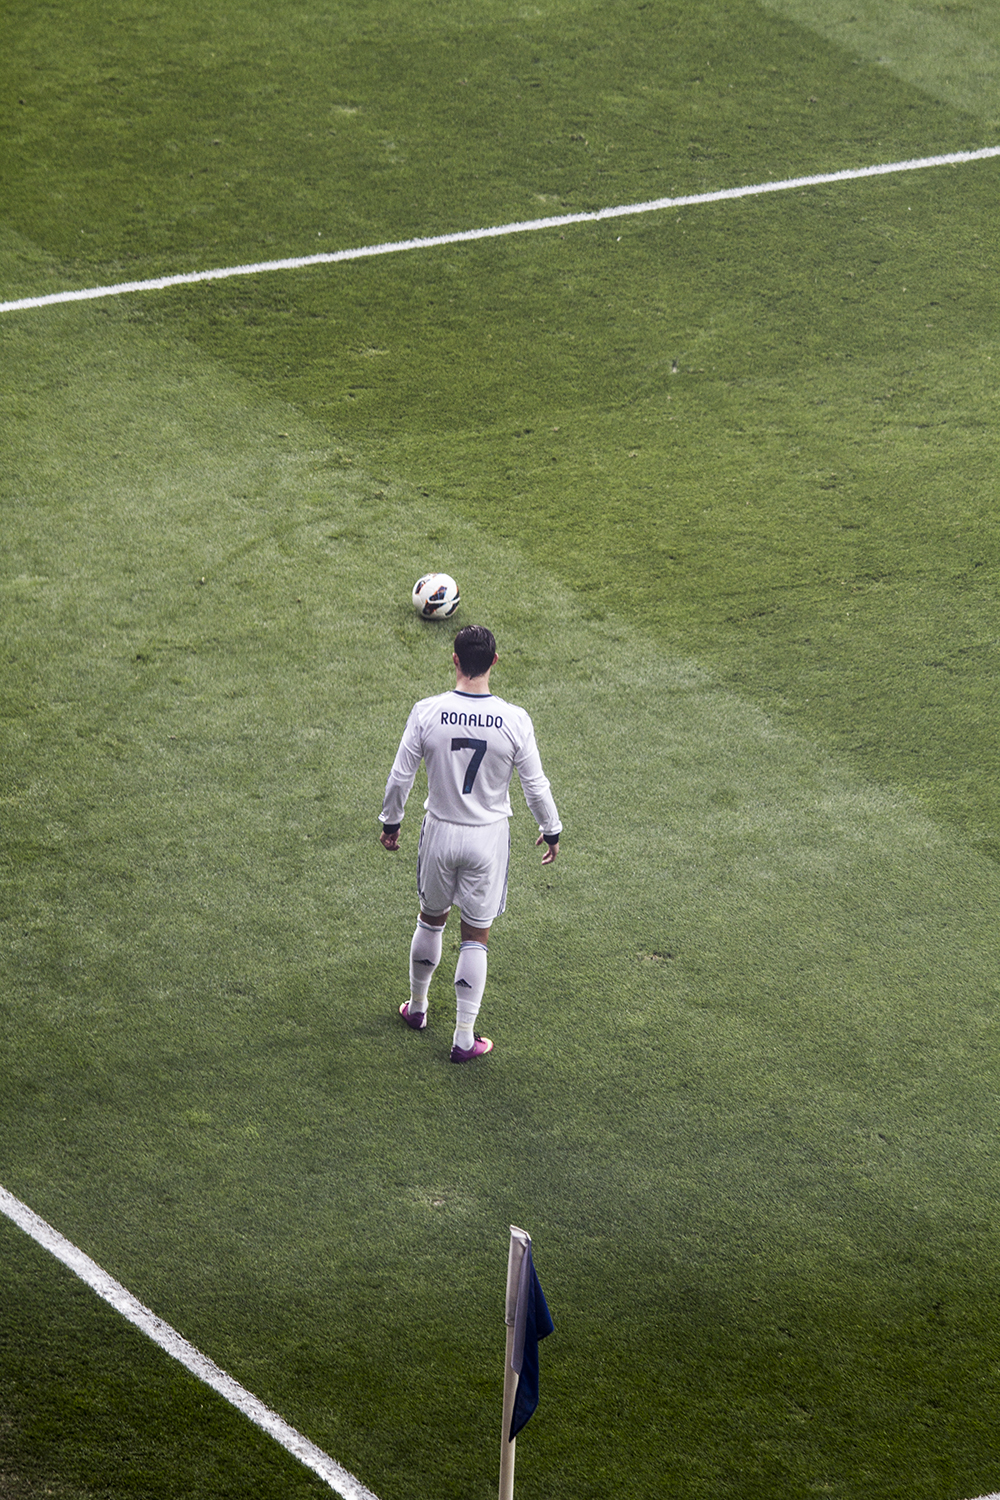 Pretty cool view of CR7.